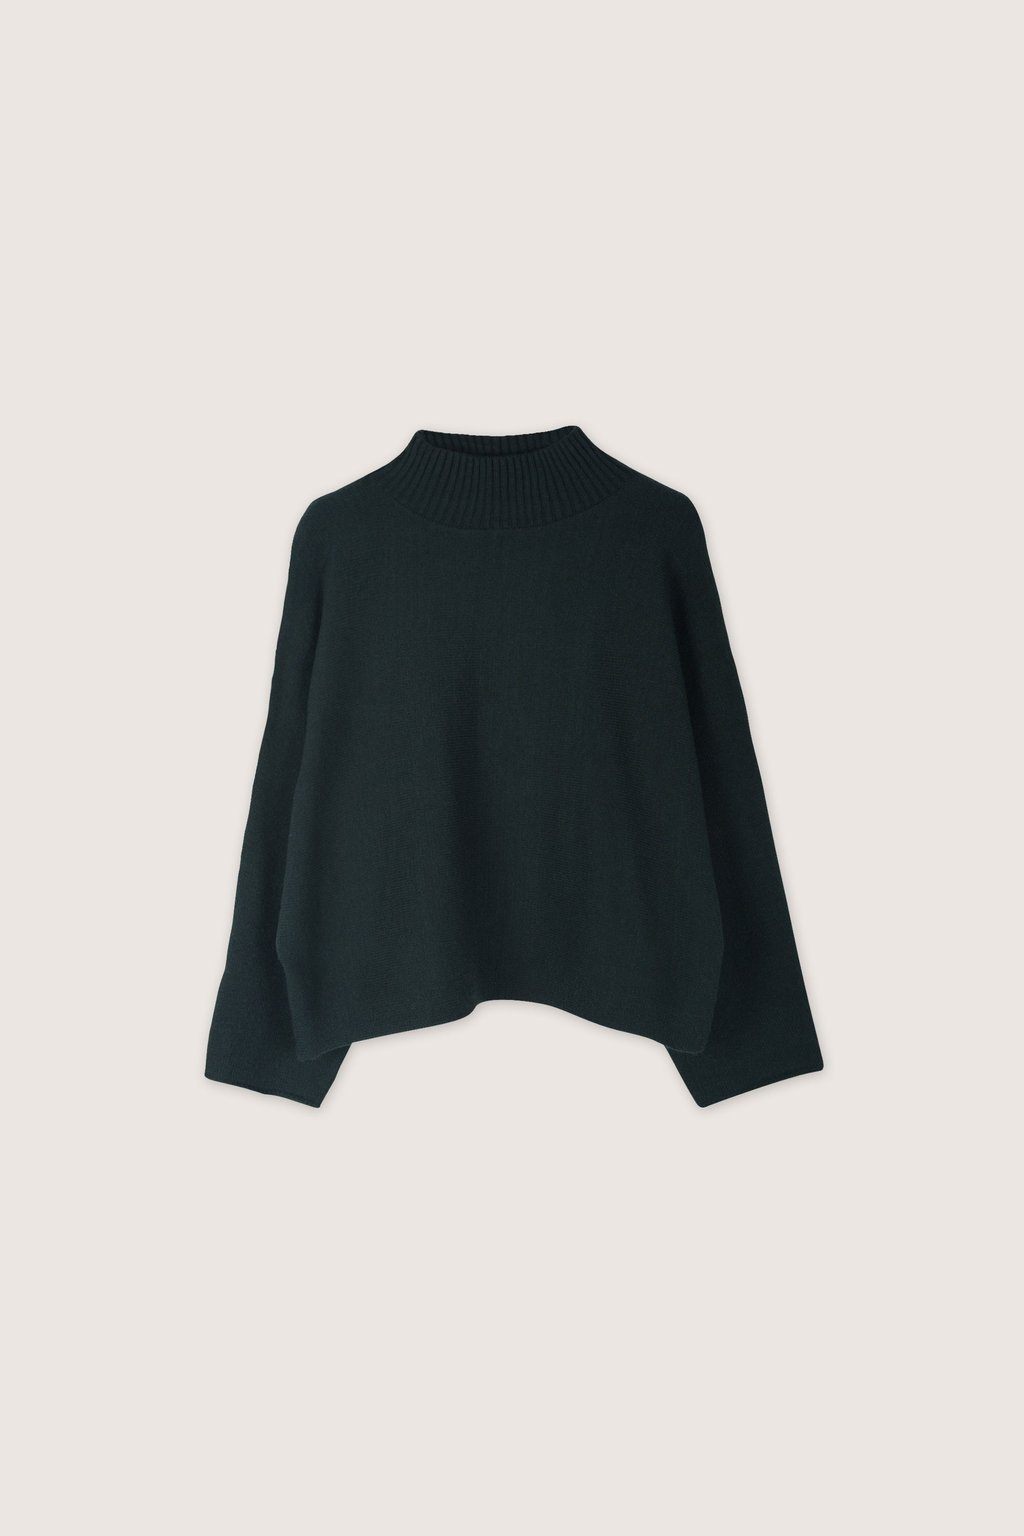 Sweater 1741 Forest Green 5